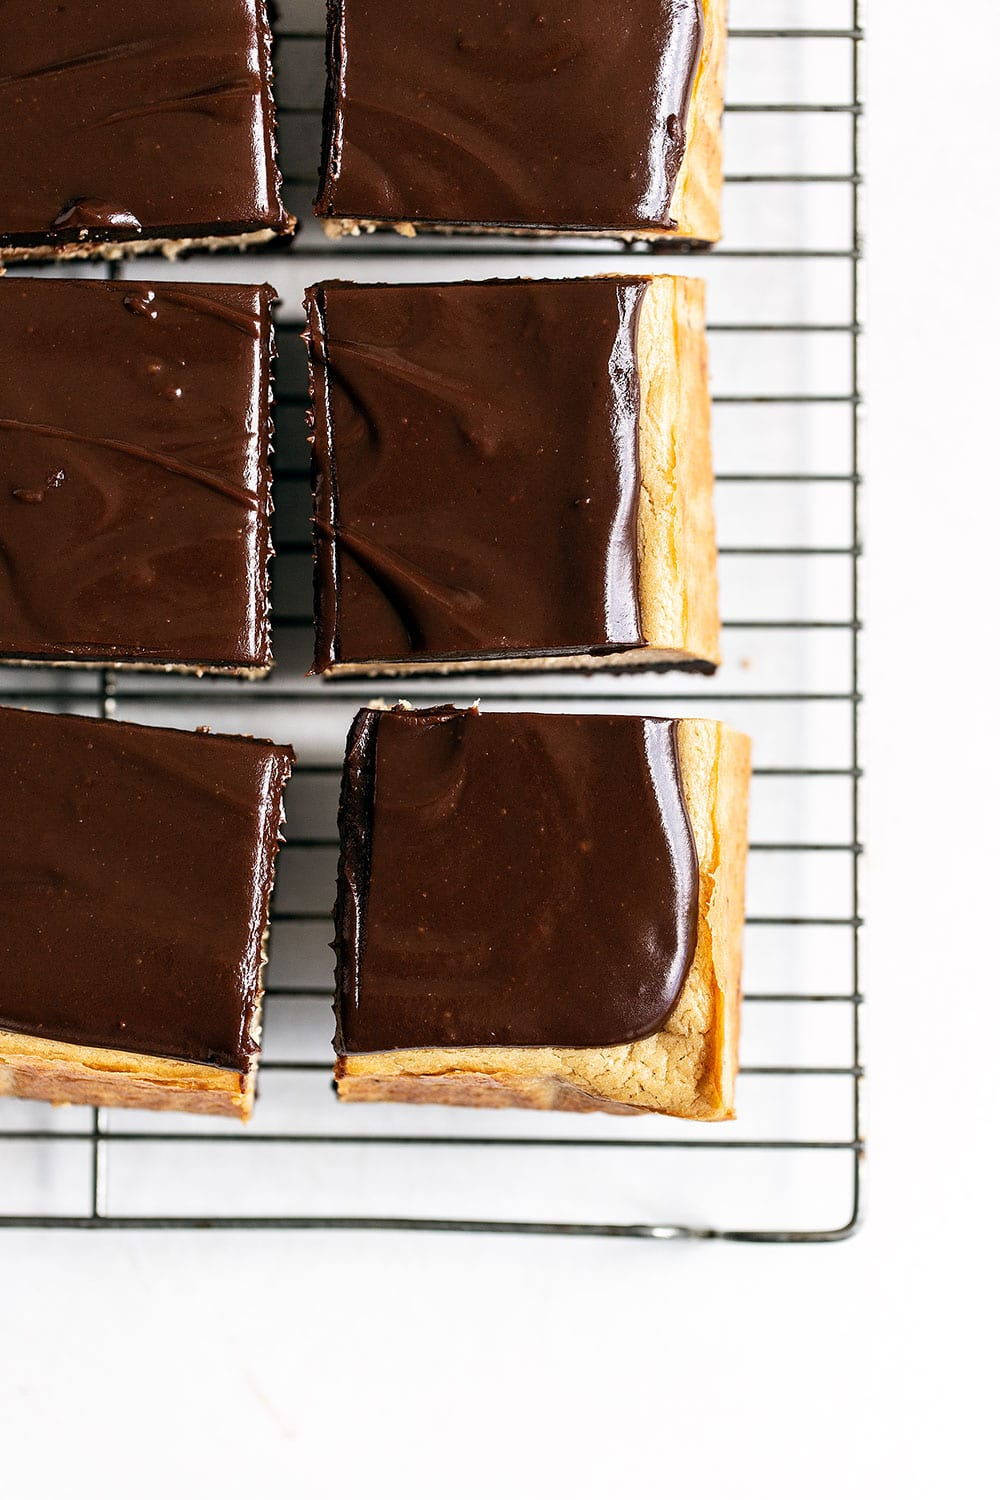 Peanut butter cheesecake brownie squares